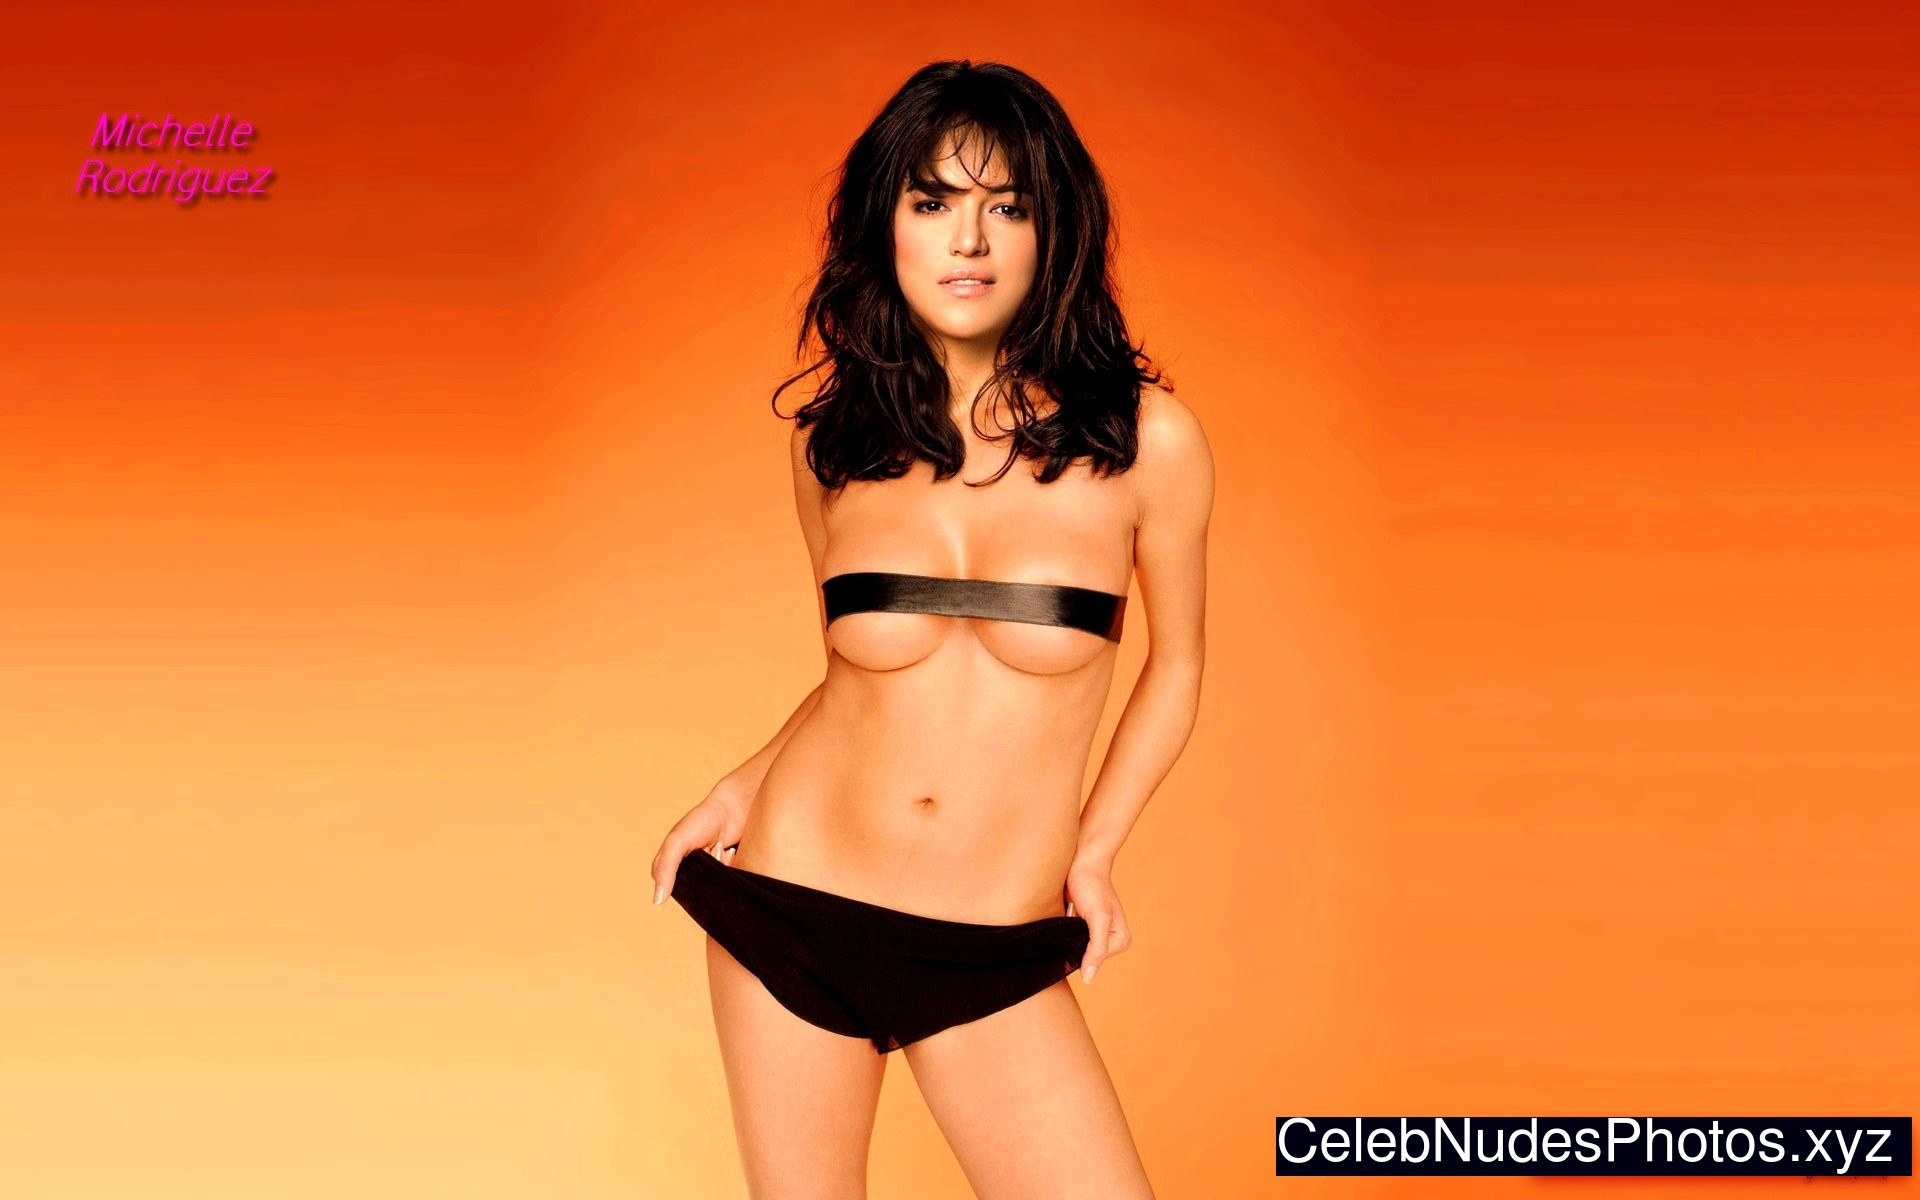 Are Michelle rodriguez porn star